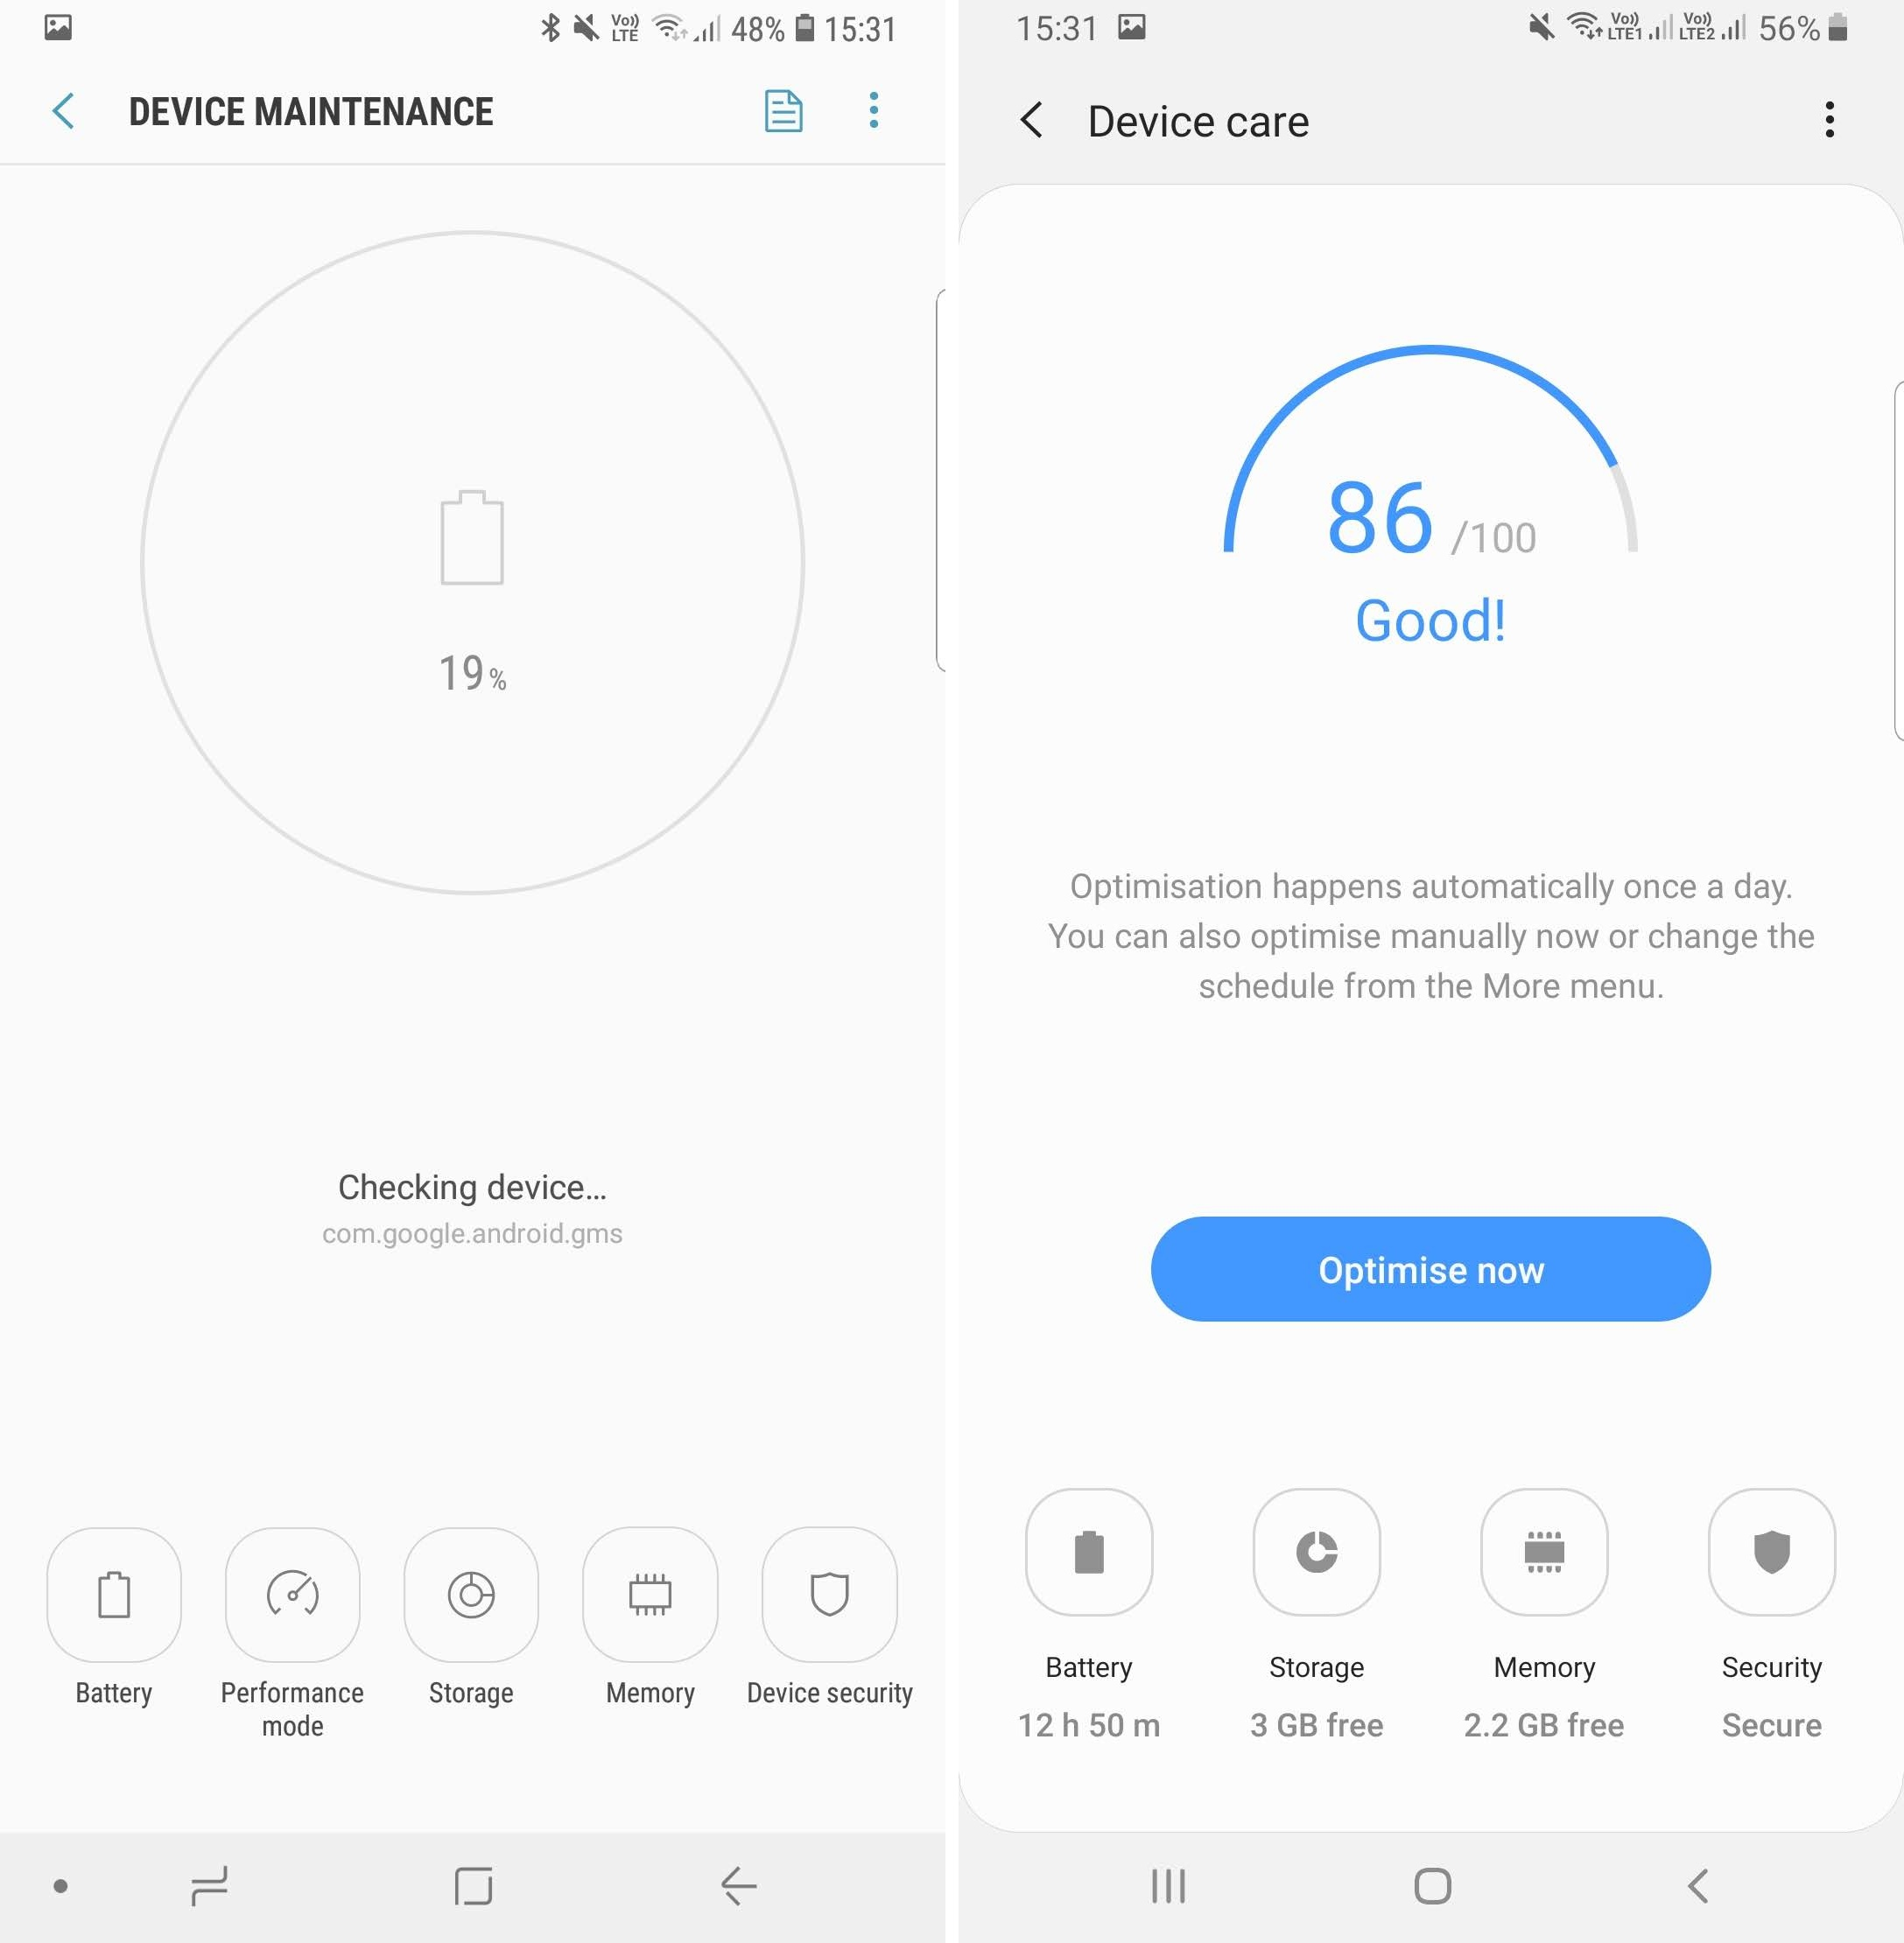 Samsung Experience Oreo Vs One Ui Android Pie In Screenshots